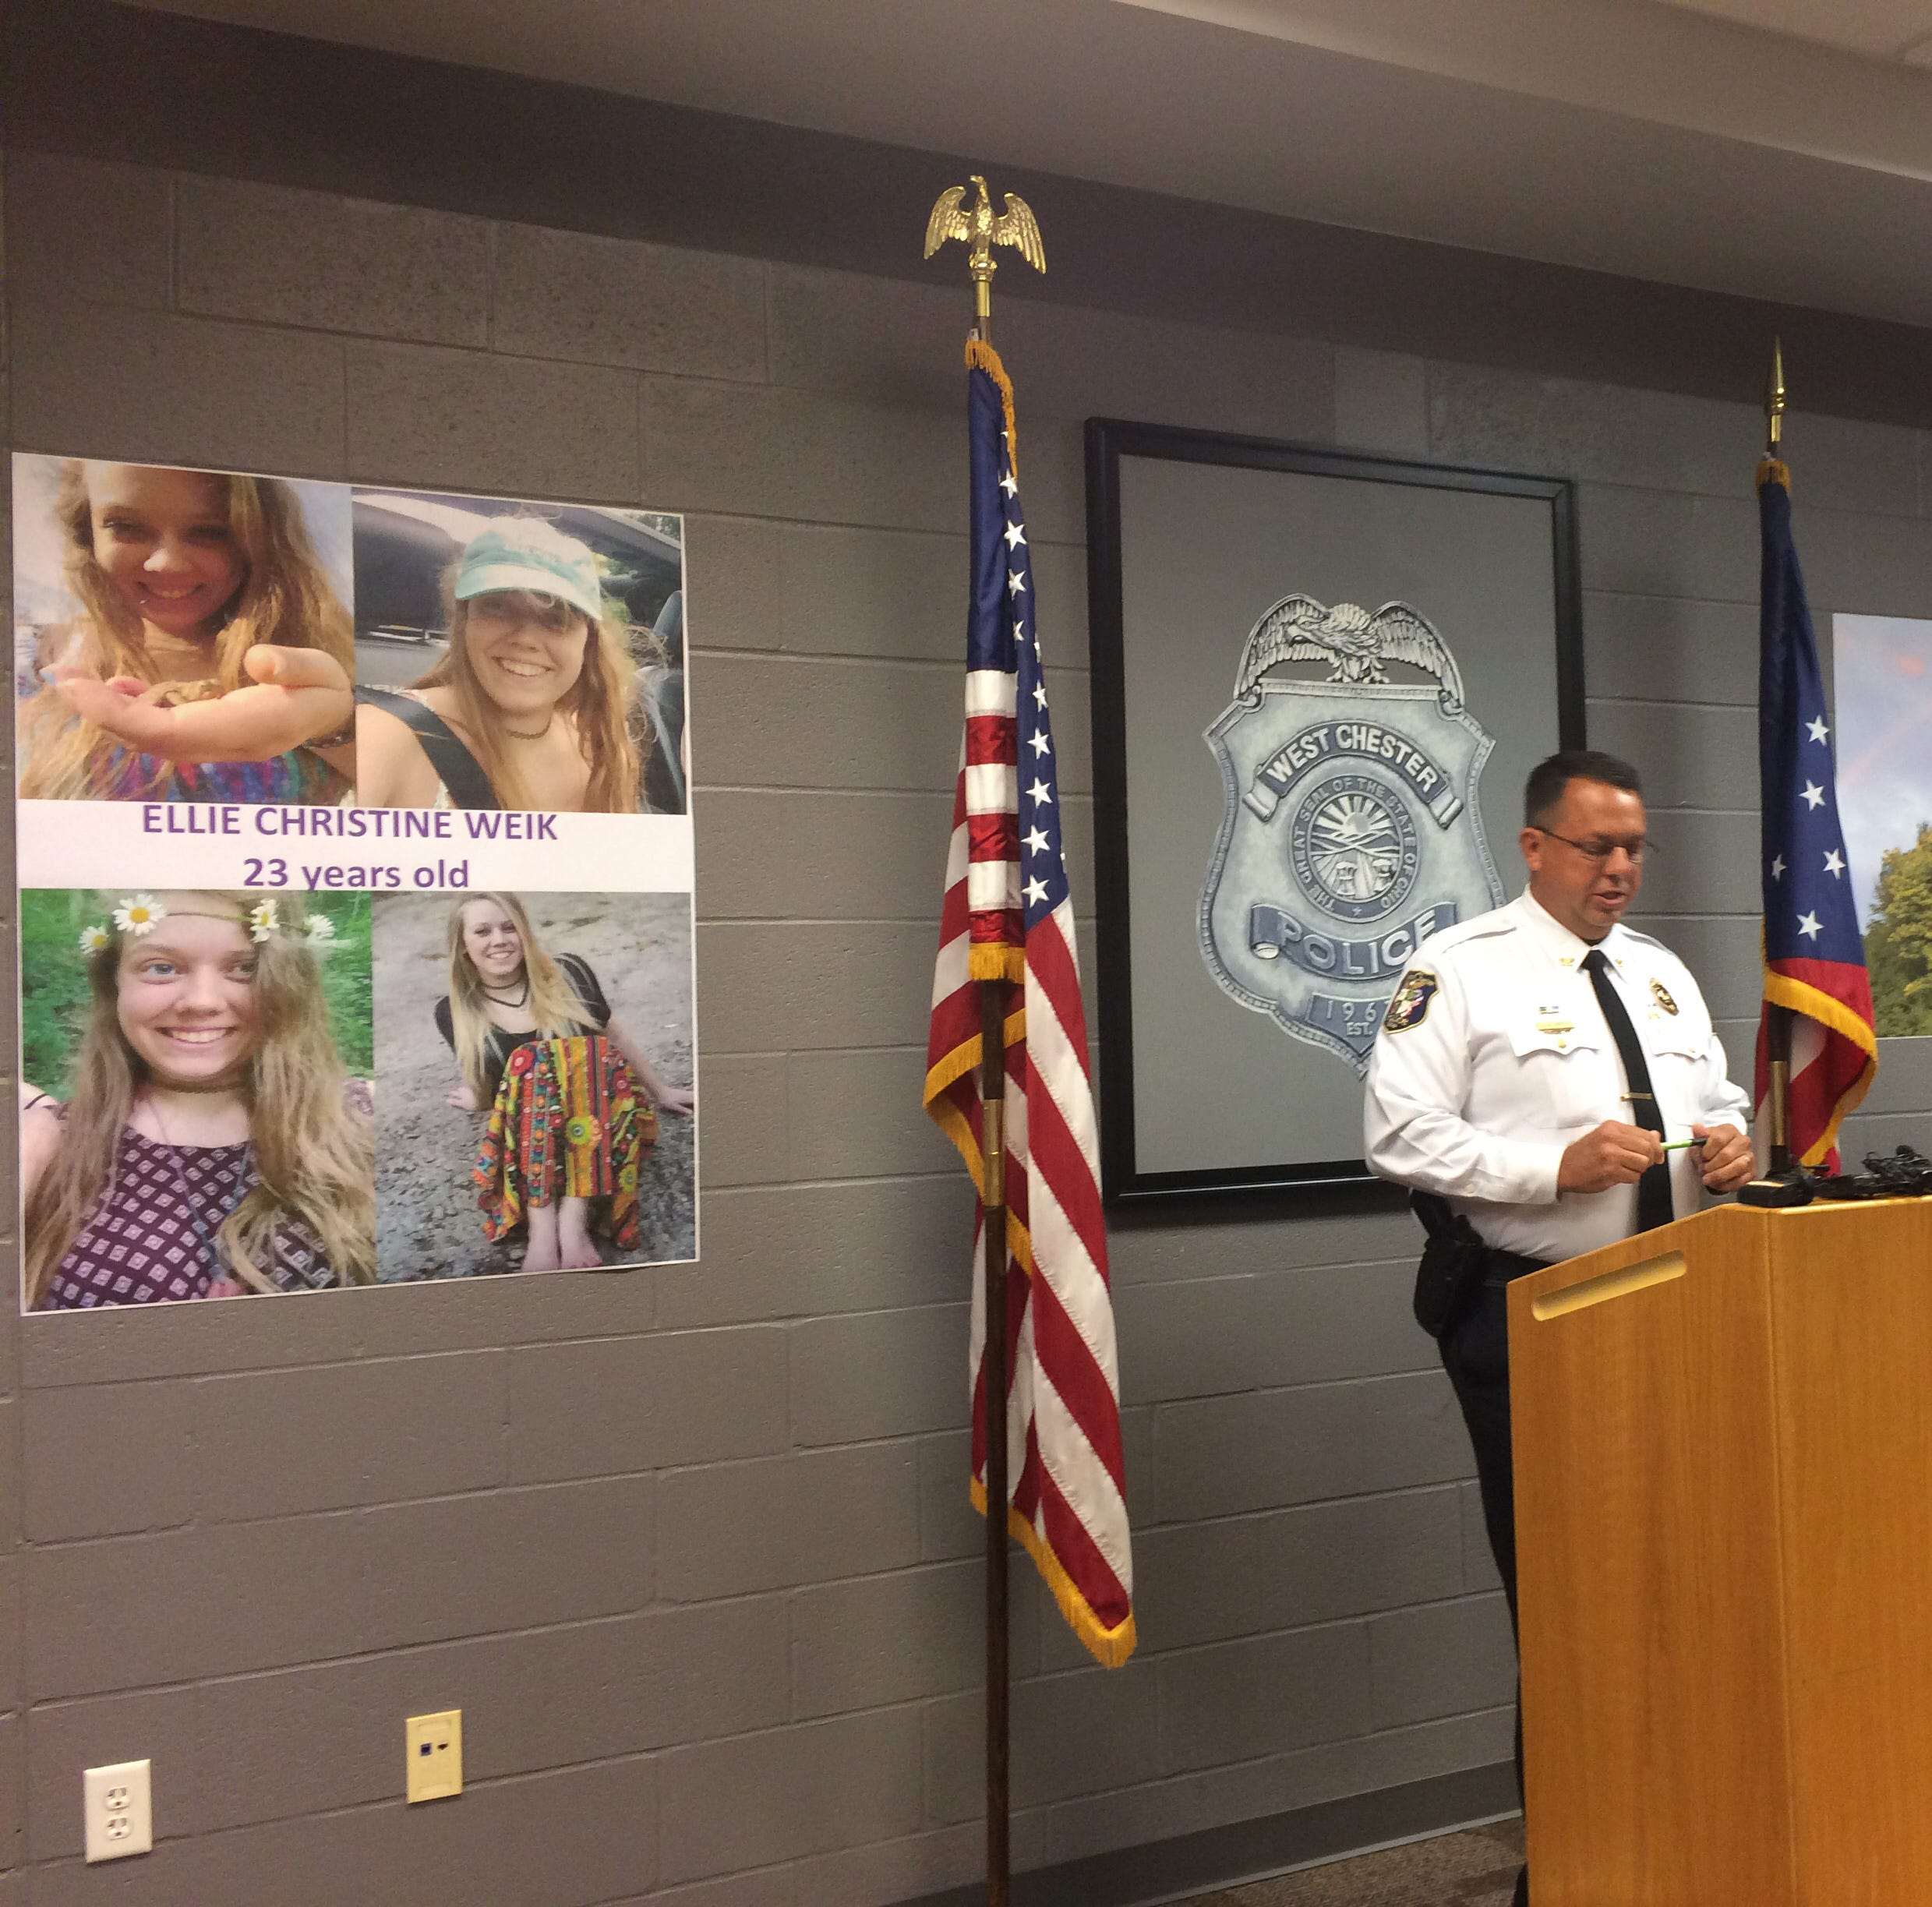 Ellie Weik case: West Chester PD had email accounts, other info on stalker before slaying